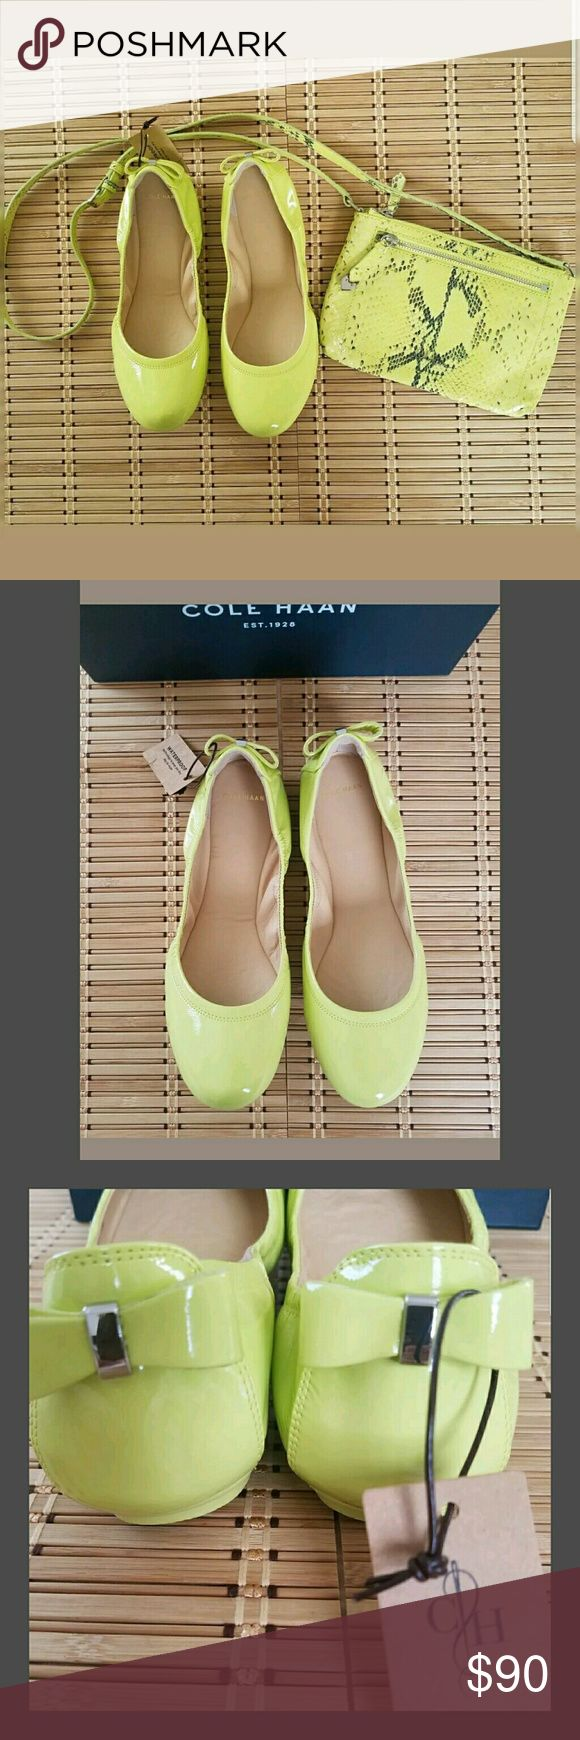 "Cole Haan Manhattan Waterproof Patent Ballet Flats New in Box  Luxe patent leather ballet flat from Cole Haan in a beautiful, vibrant ""spring"" green / lemon-lime color.  Excellent support for all day wear and maximum comfort.  A dainty back bow accents a patent leather ballet flat that's lightweight, waterproof and fully padded.  Leather upper and lining/rubber sole.  Please note that these are a C (wide width) shoe. However, they are known to run narrow/small so they fit a standard/medium…"